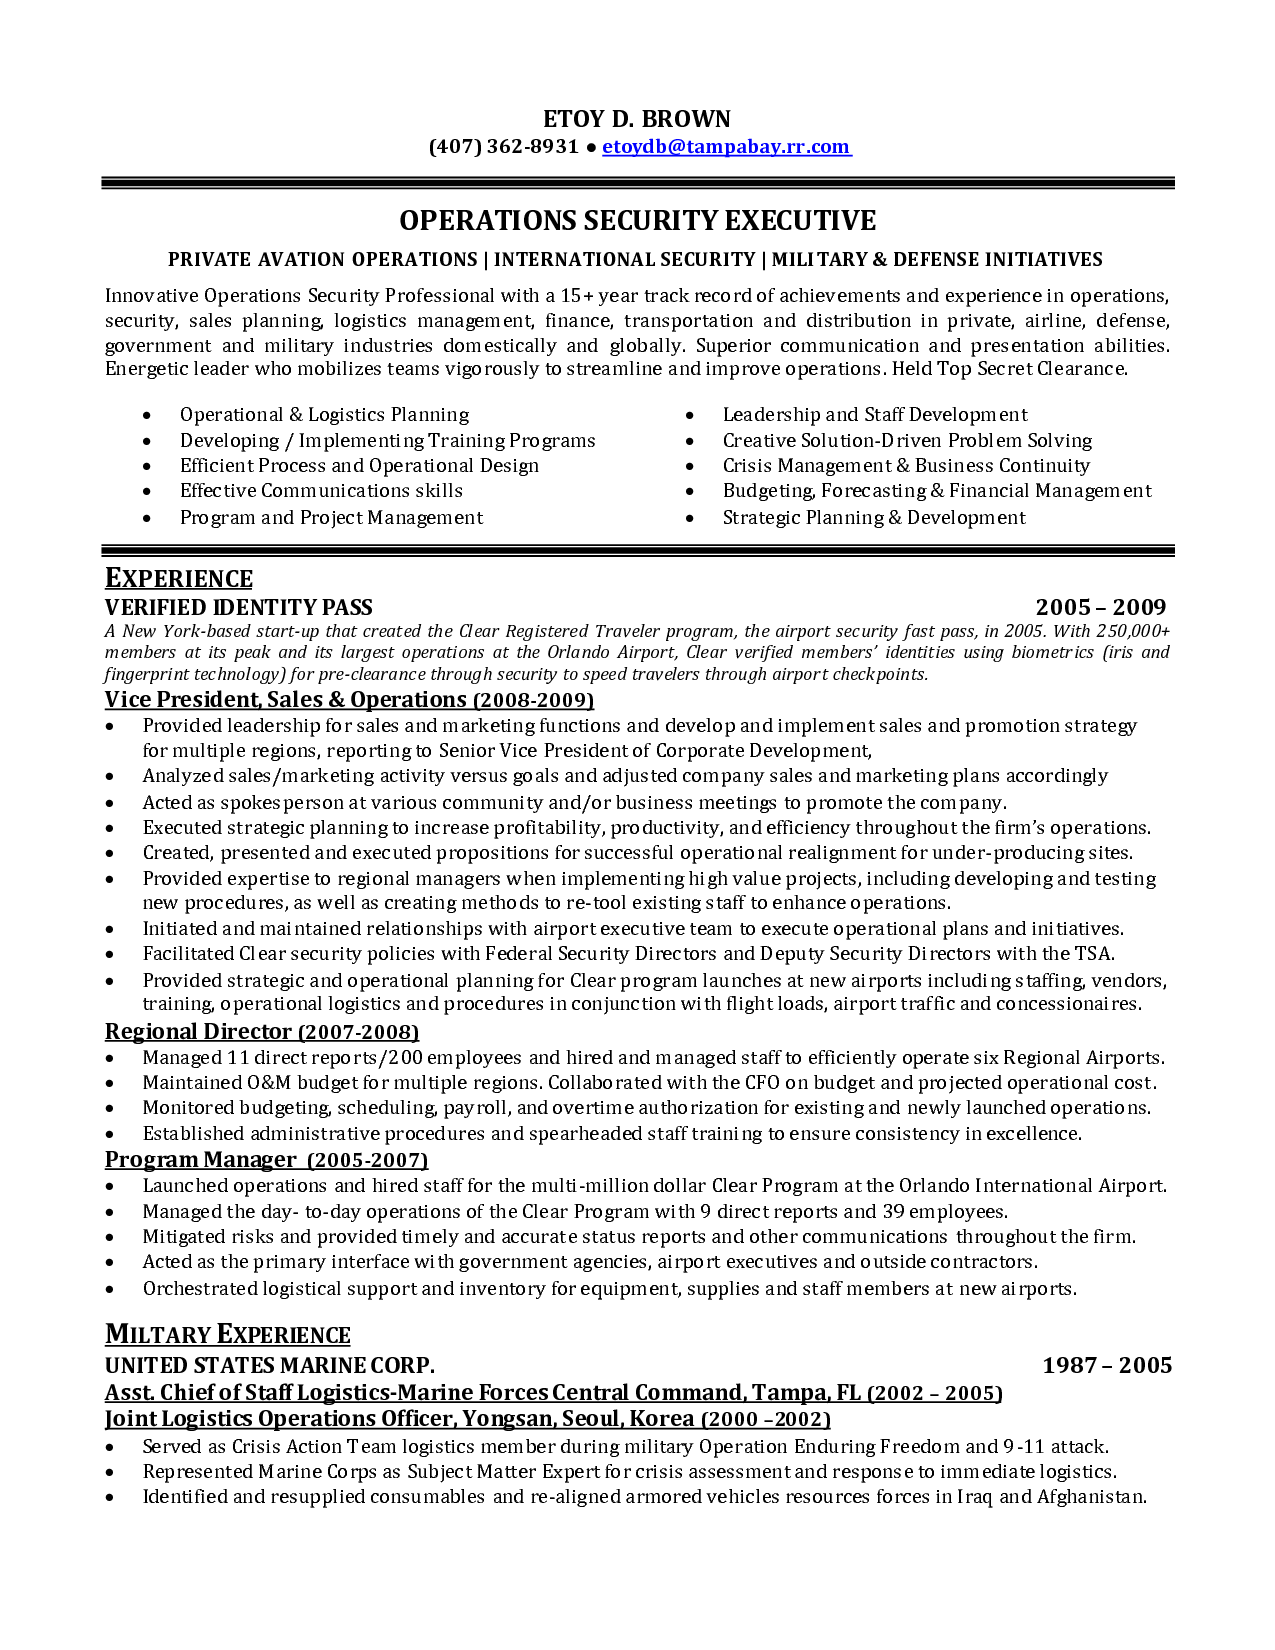 Military Contractor Sample Resume Assistance Dog Trainer Cover Letter  Security Operations Manager Supervisor Resumehtml  Vice President Of Operations Resume